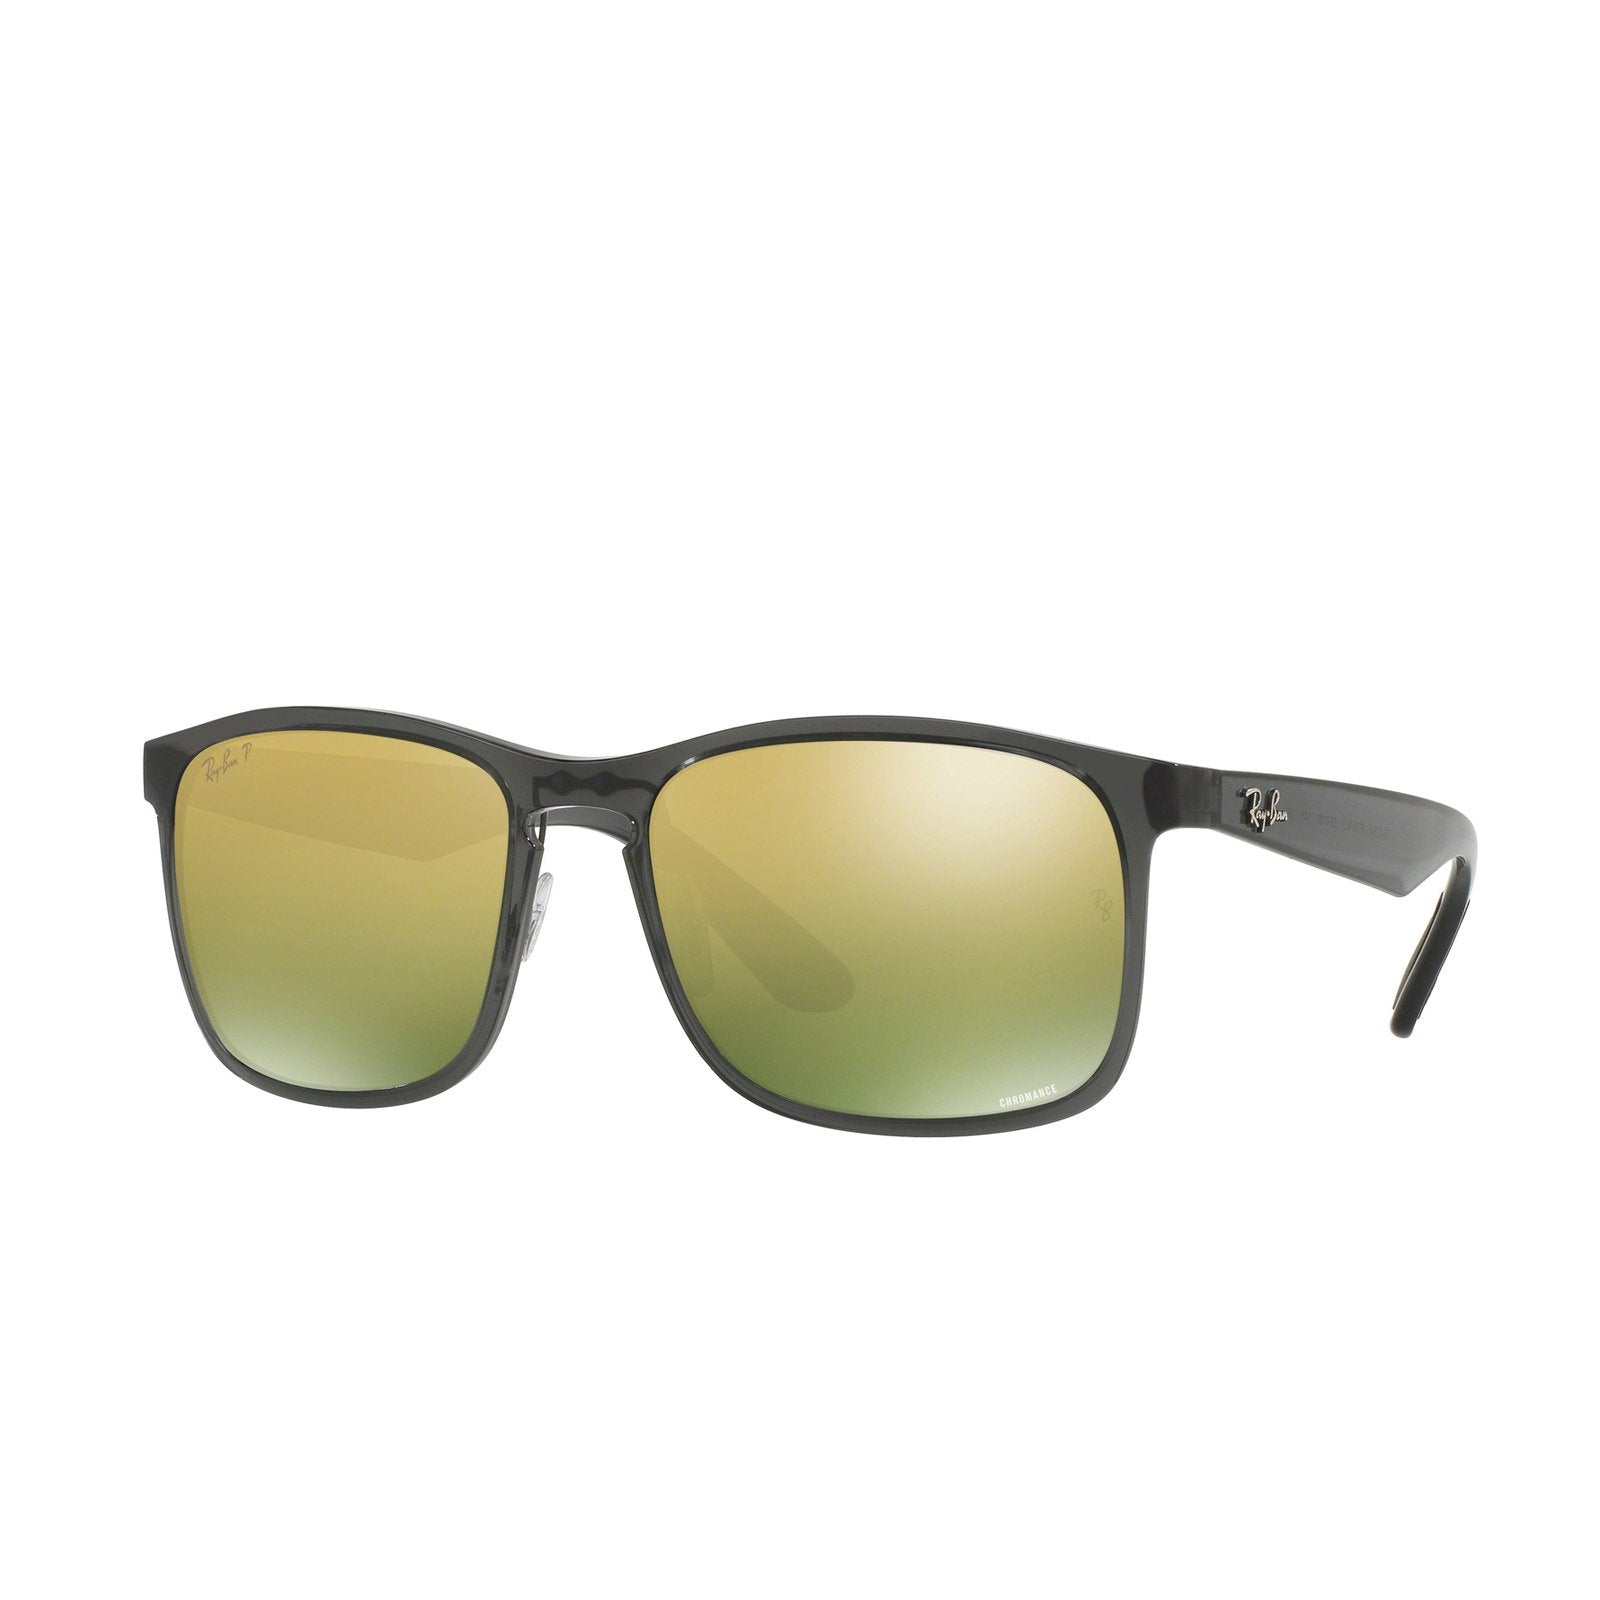 Ray-Ban RB4264 876/6O Sunglasses